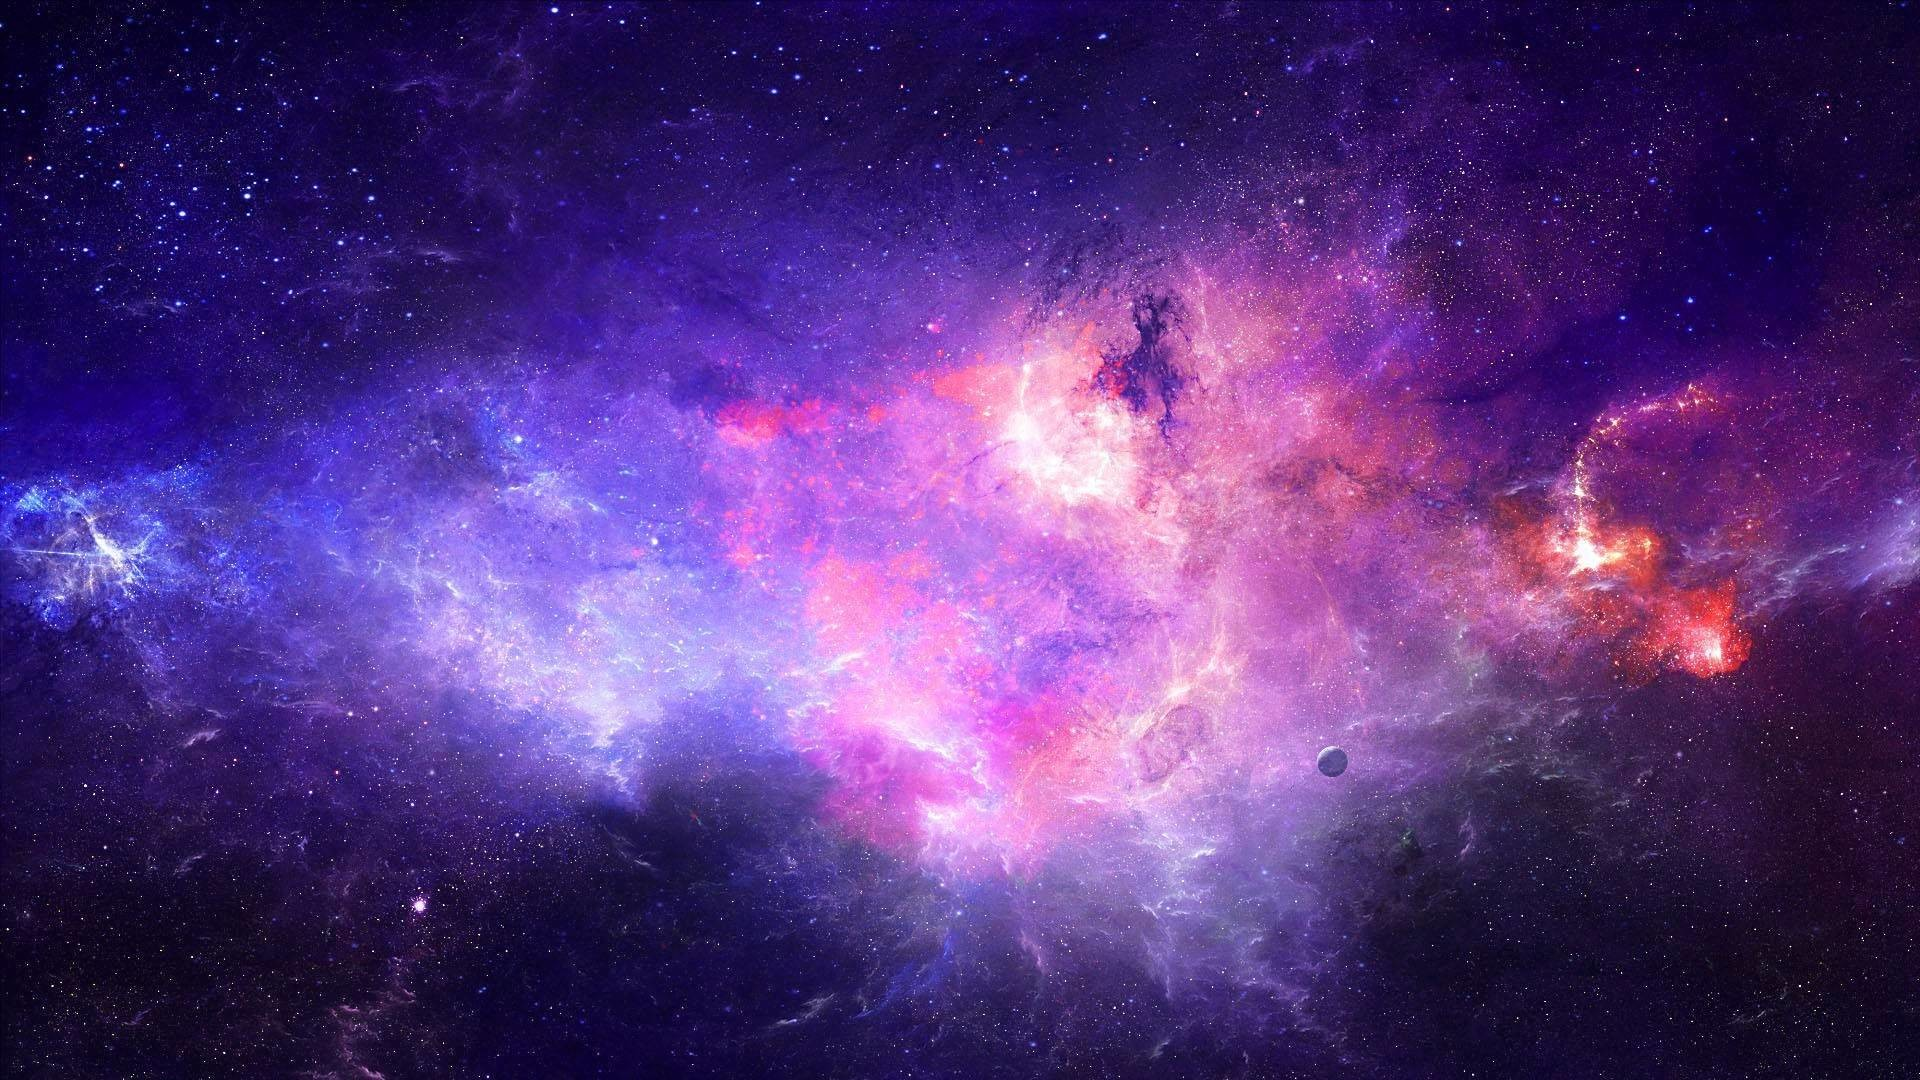 Space backgrounds 1920x1080 73 images 1920x1080 1920x1080 wallpaper planet rings sky space voltagebd